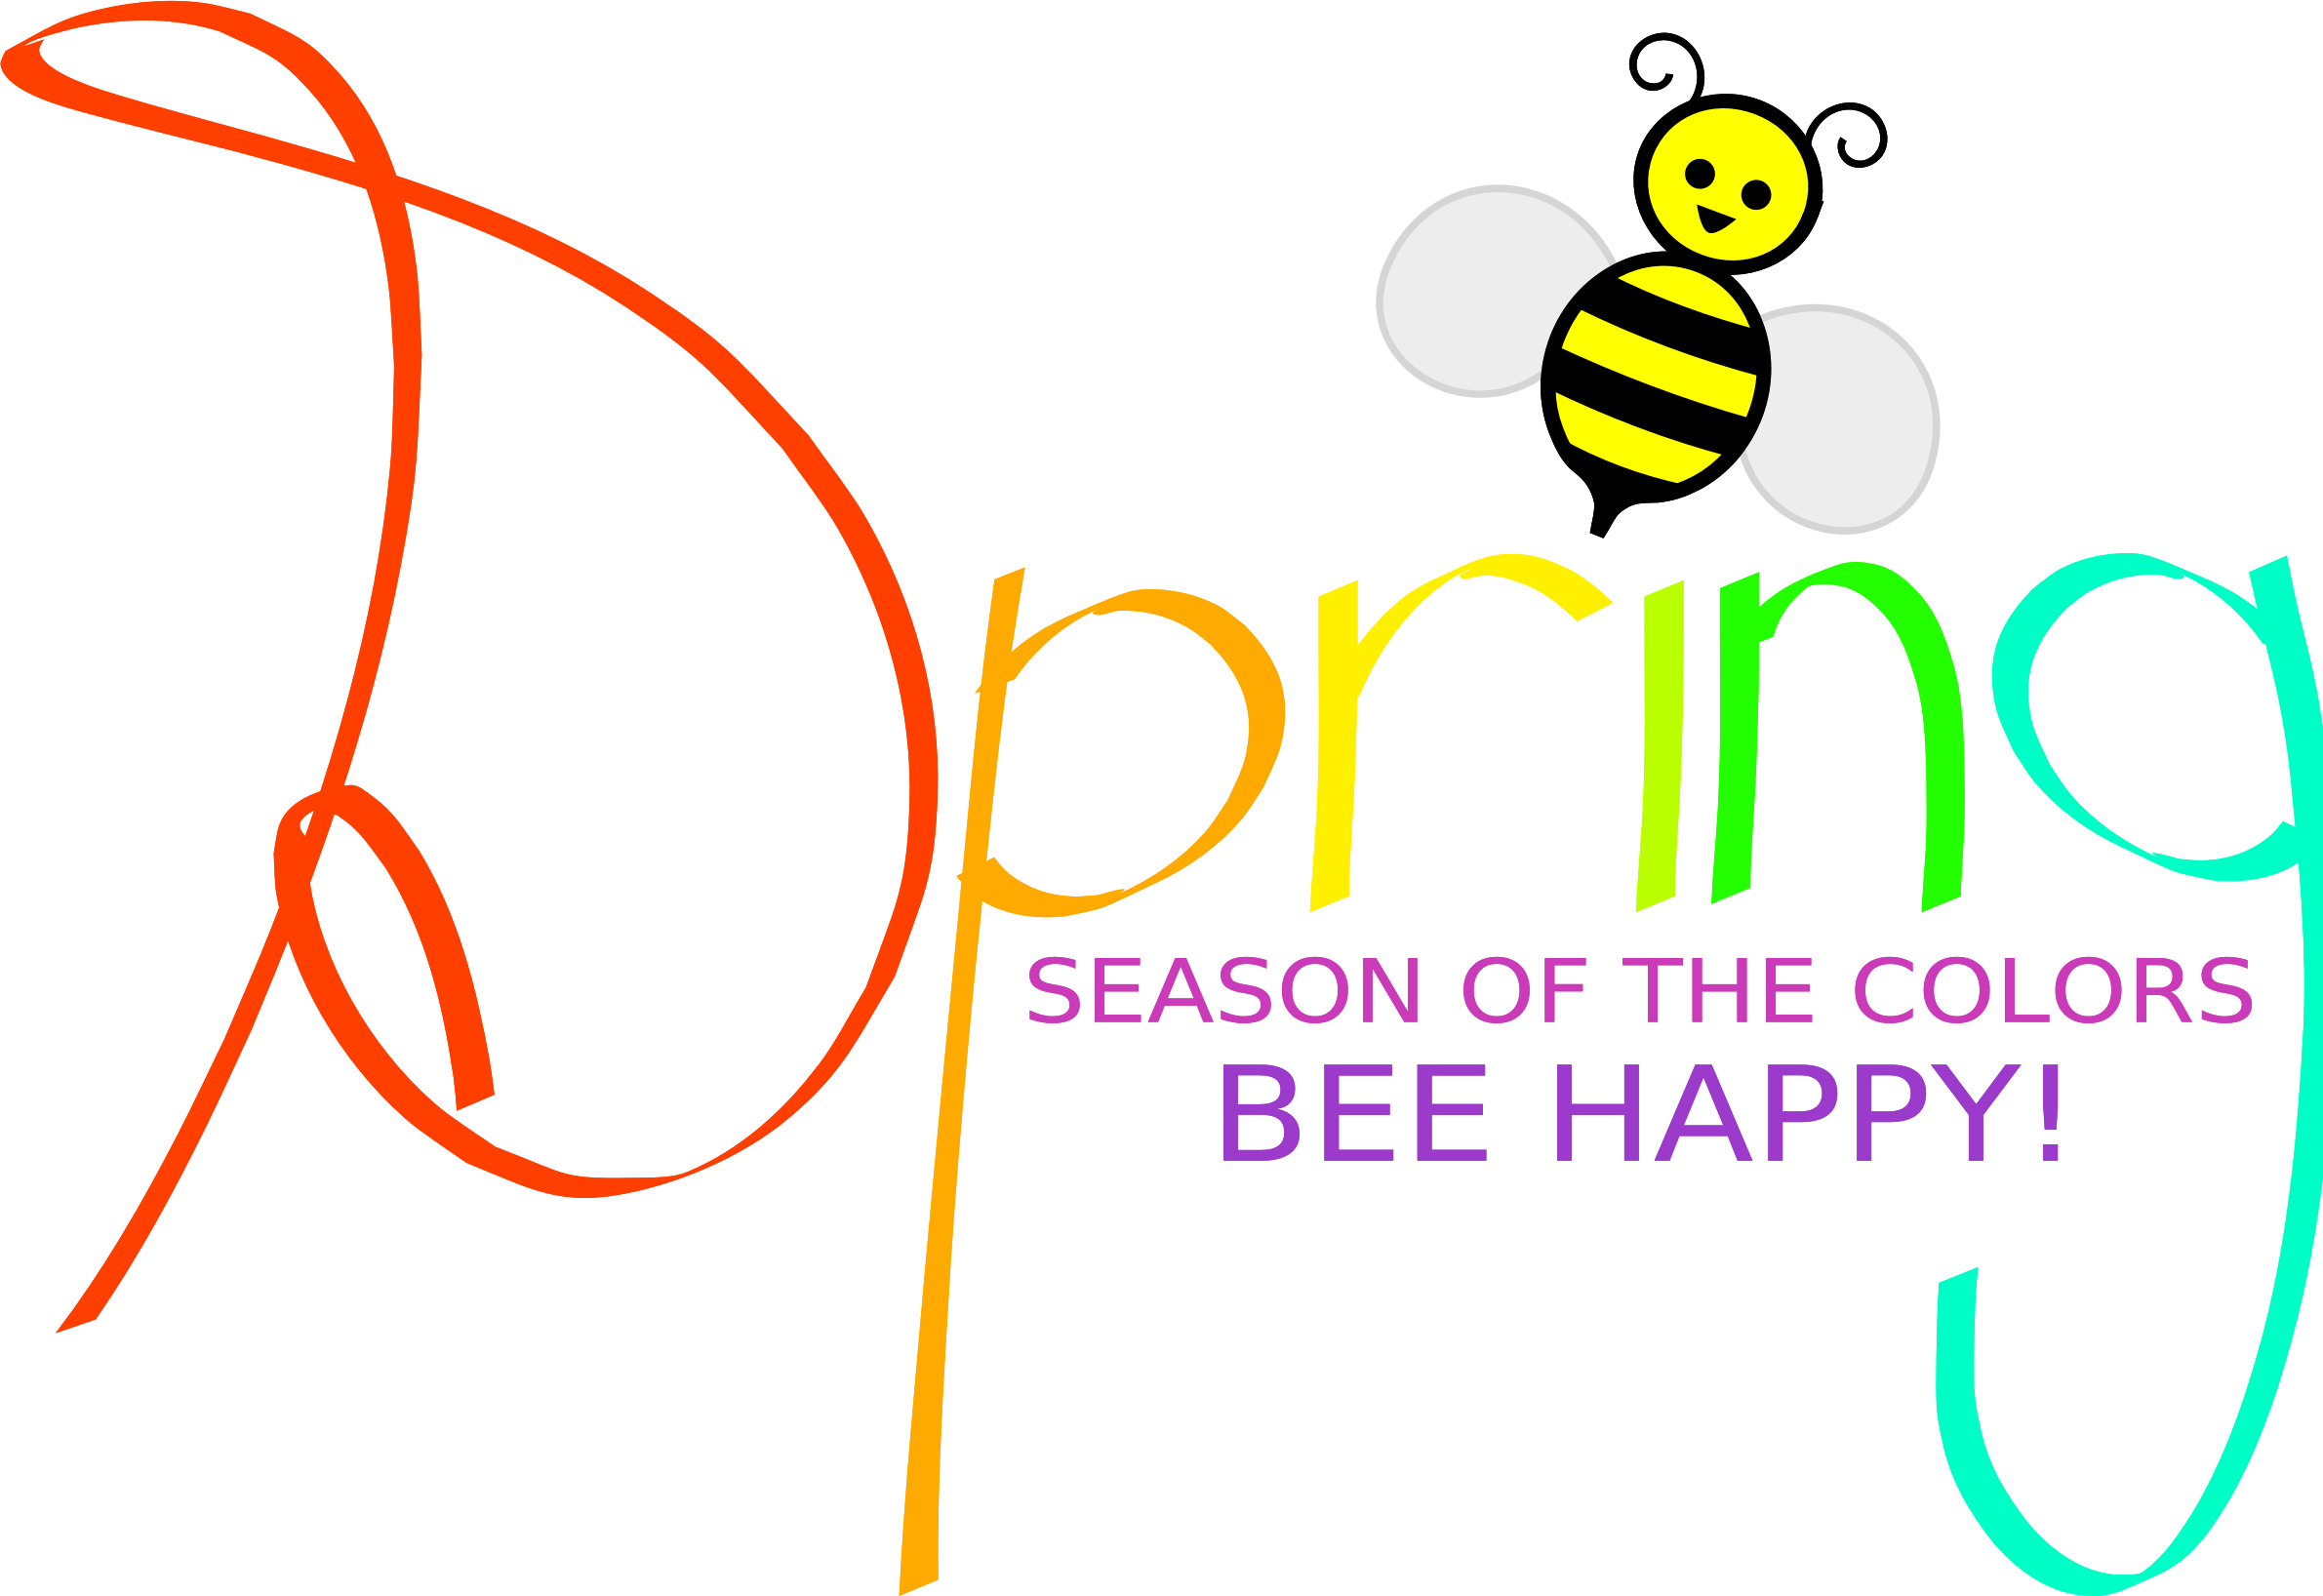 Spring Season of the Colors BEE HAPPY! by tinawamsley